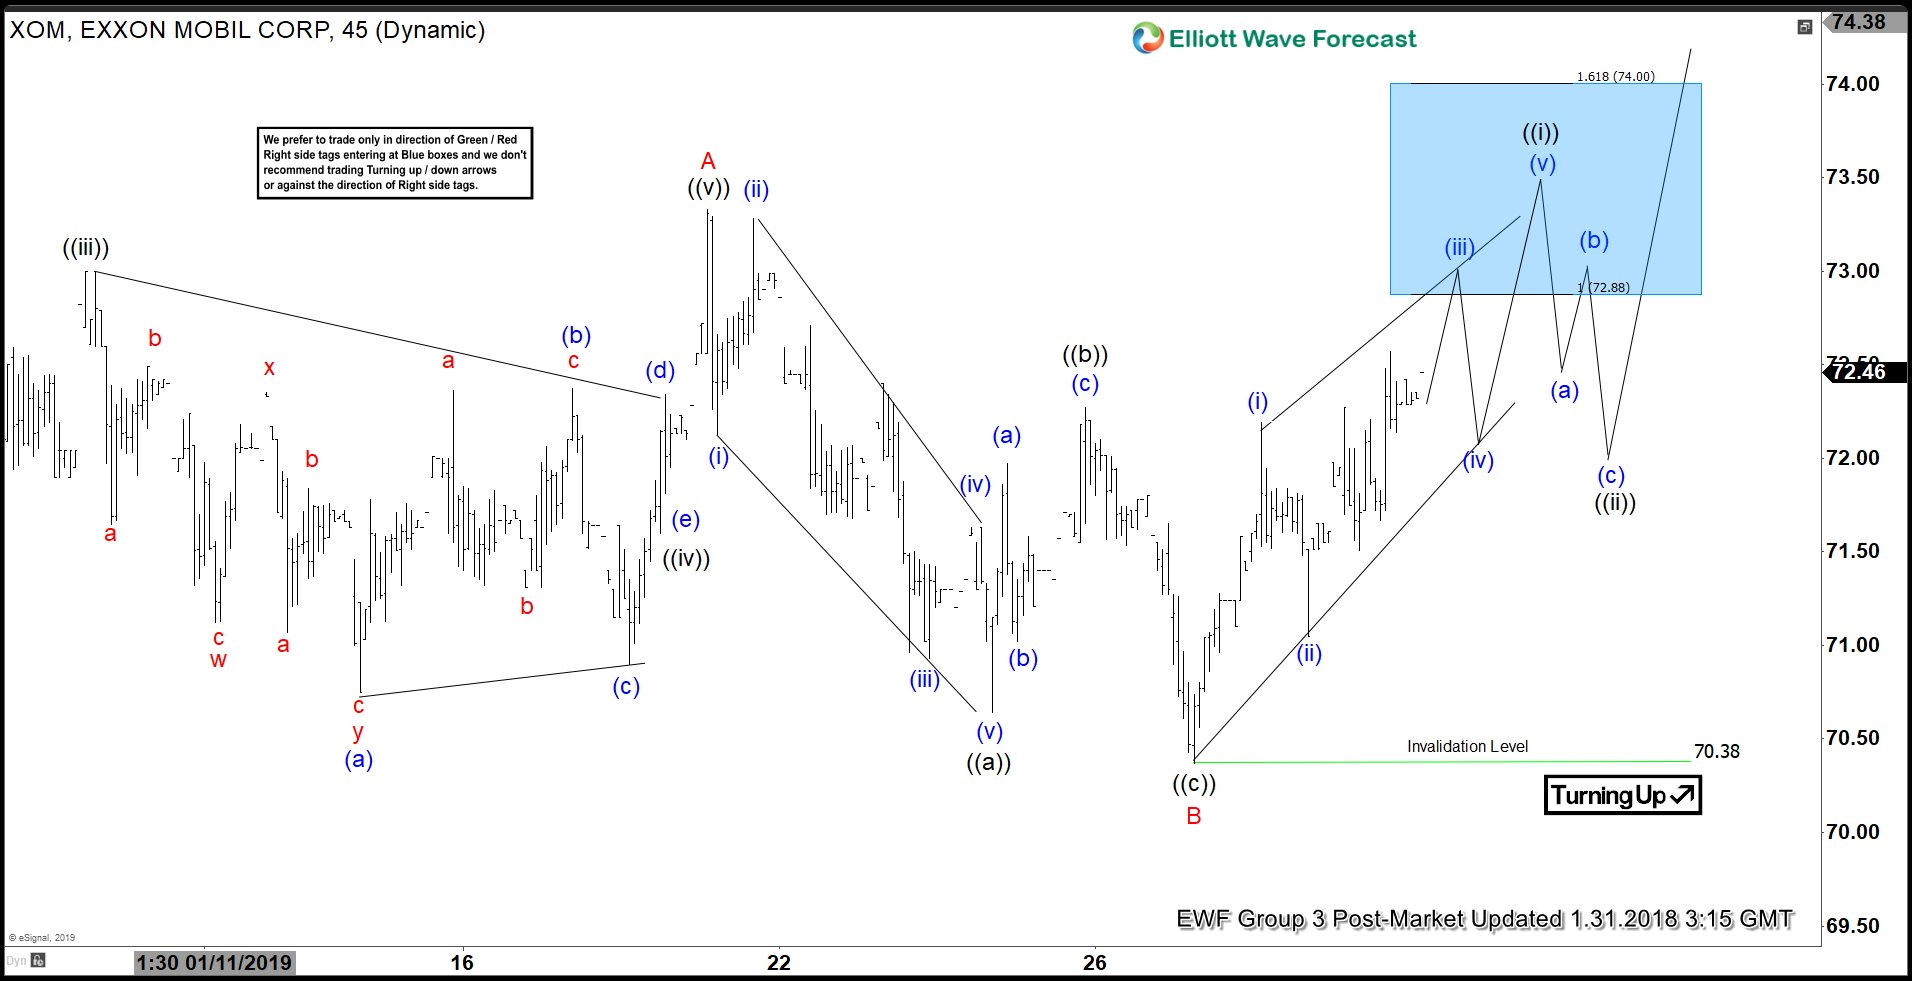 Elliott Wave view of Exxon Mobil Expecting a Rally